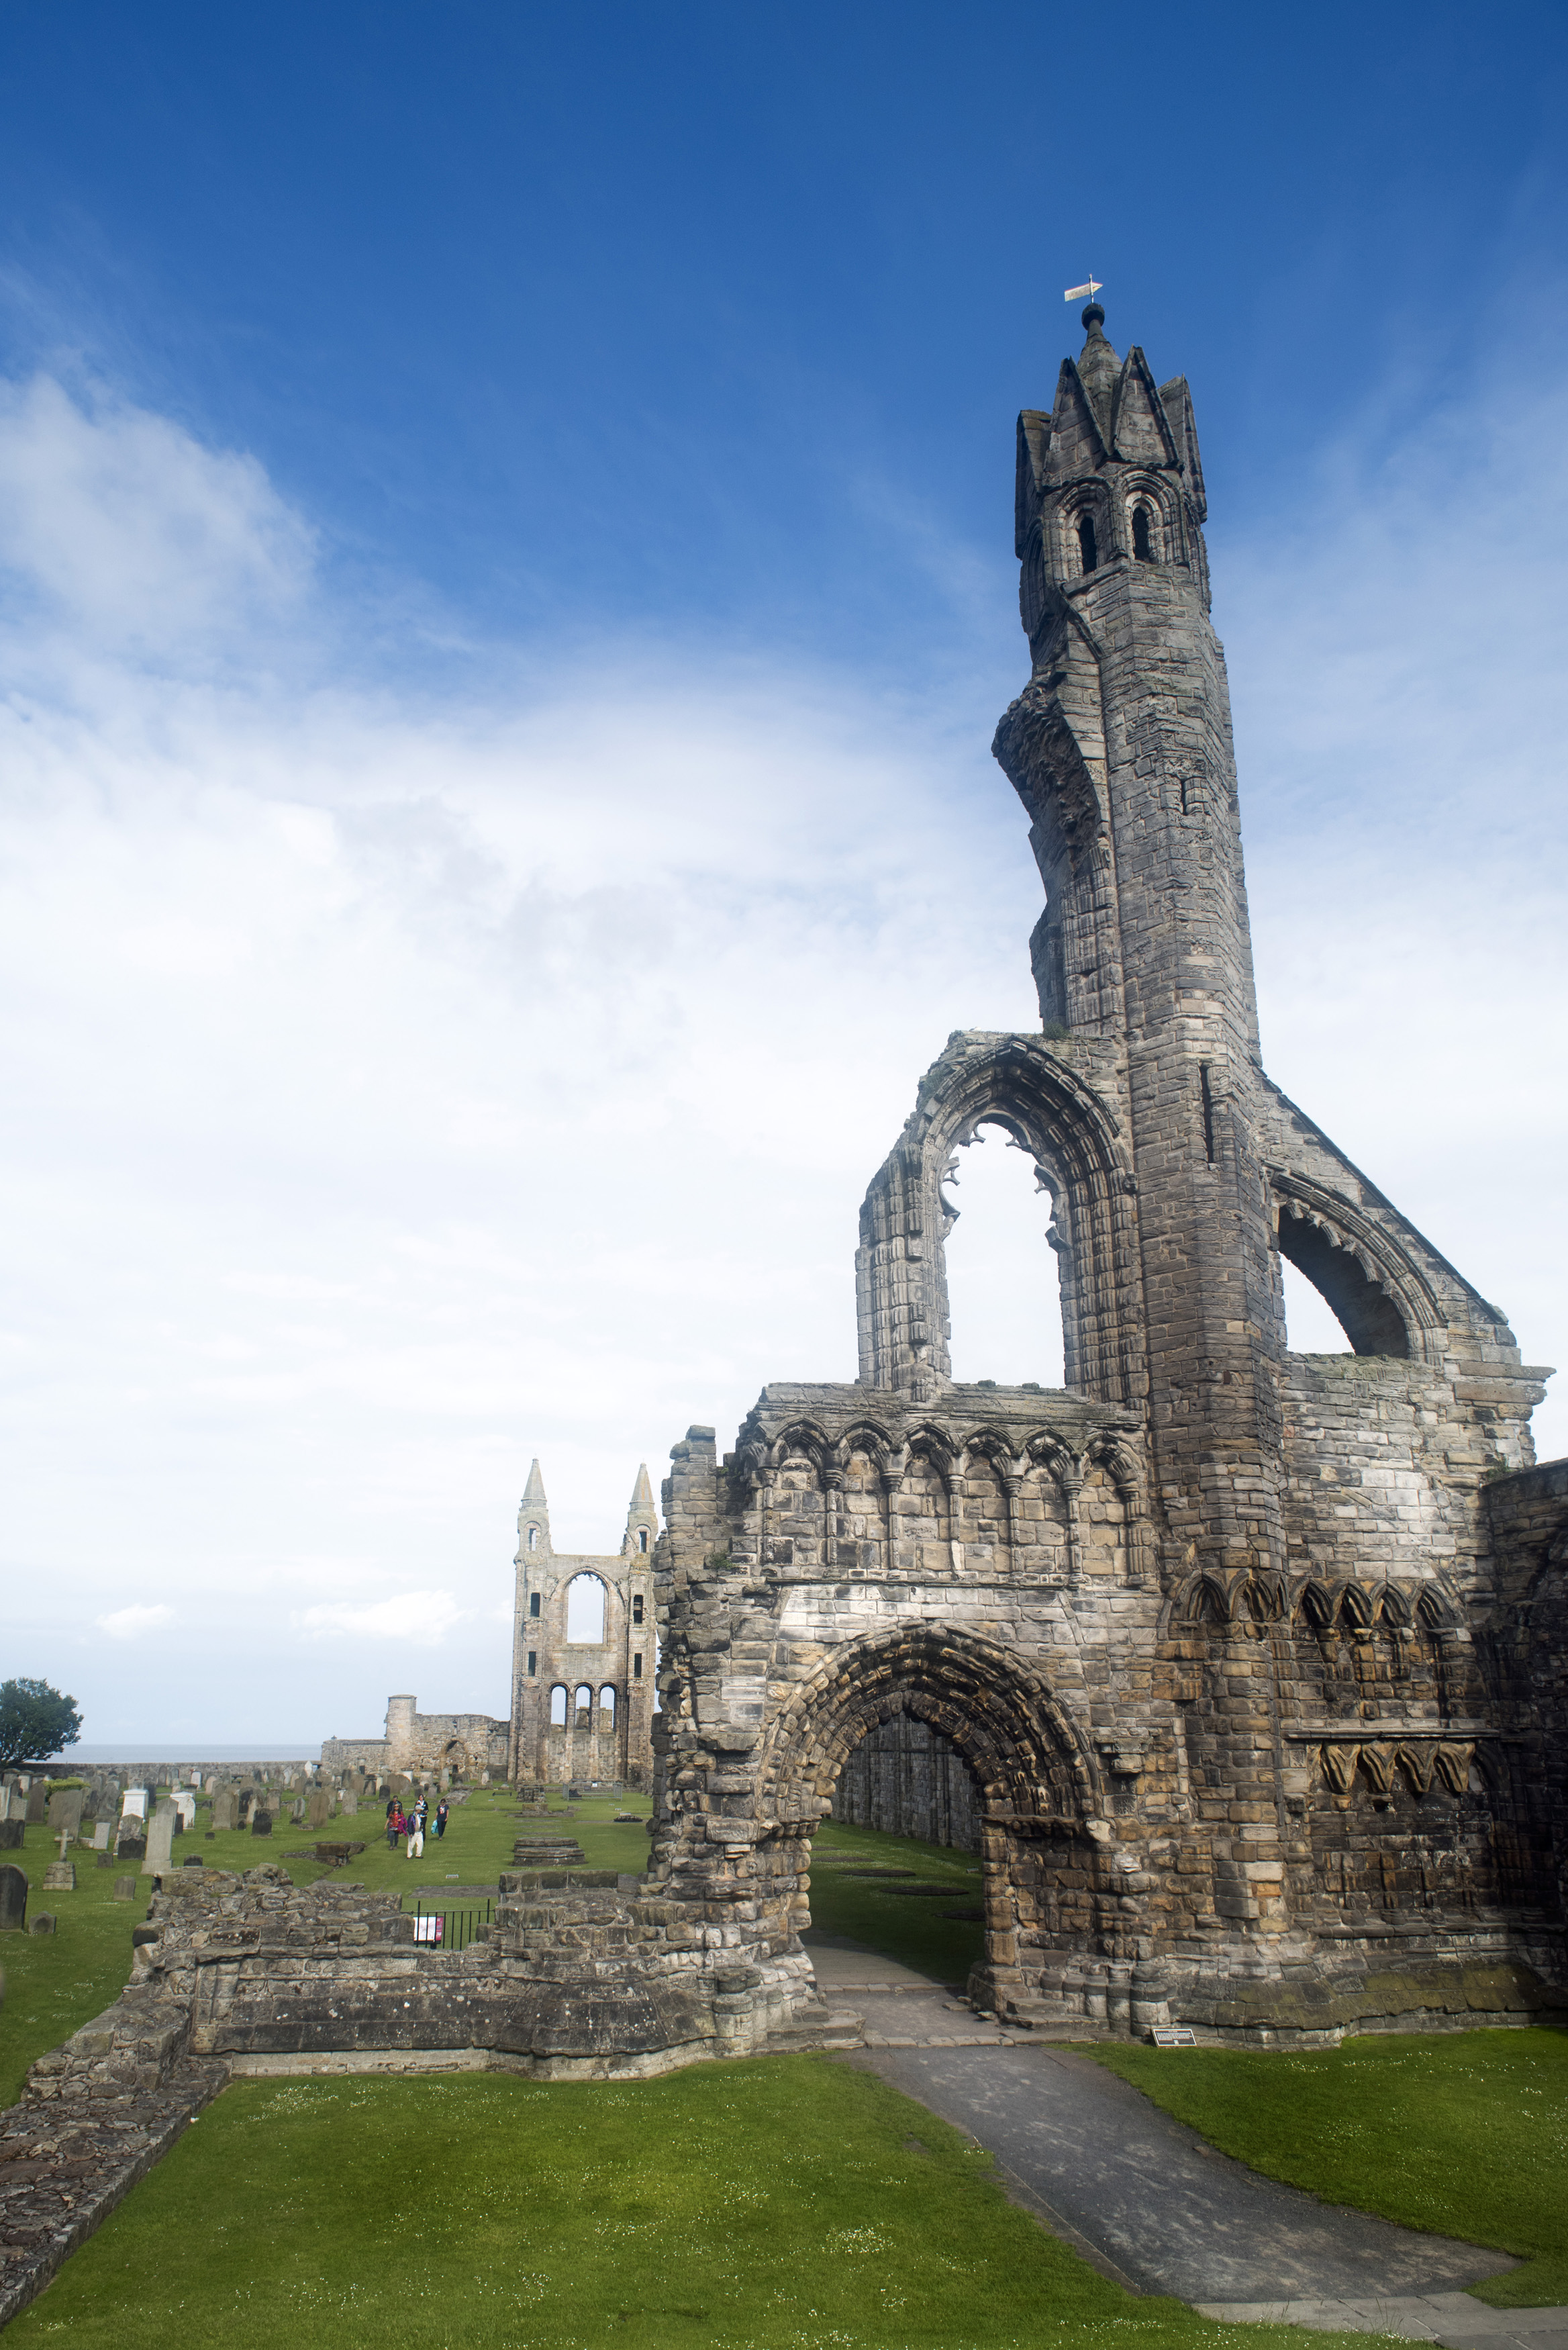 Beautiful Scottish ruins of St. Andrews cathedral as feathery clouds stretch overhead